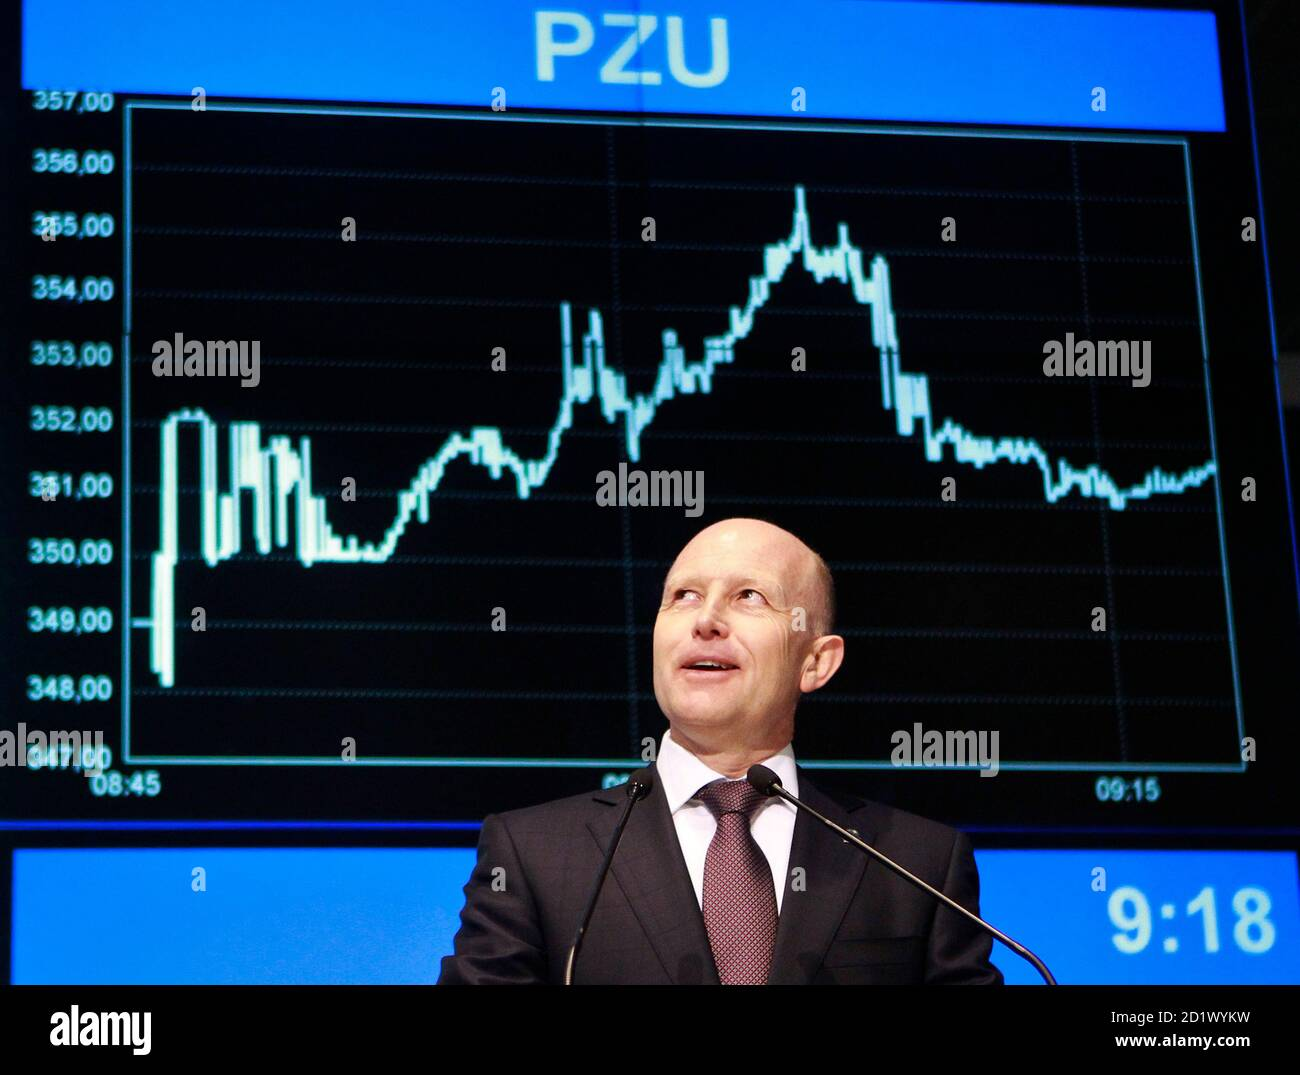 Andrzej Klesyk, chief executive of PZU Group, speaks during the launch of the trading at Warsaw Stock Exchange May 12, 2010. Poland's top insurer PZU posted strong gains in its market debut on Wednesday, to cap Europe's largest initial public offer in two years after braving volatile markets that forced others to put off flotations.  REUTERS/Peter Andrews (POLAND - Tags: POLITICS BUSINESS IMAGES OF THE DAY) Banque D'Images